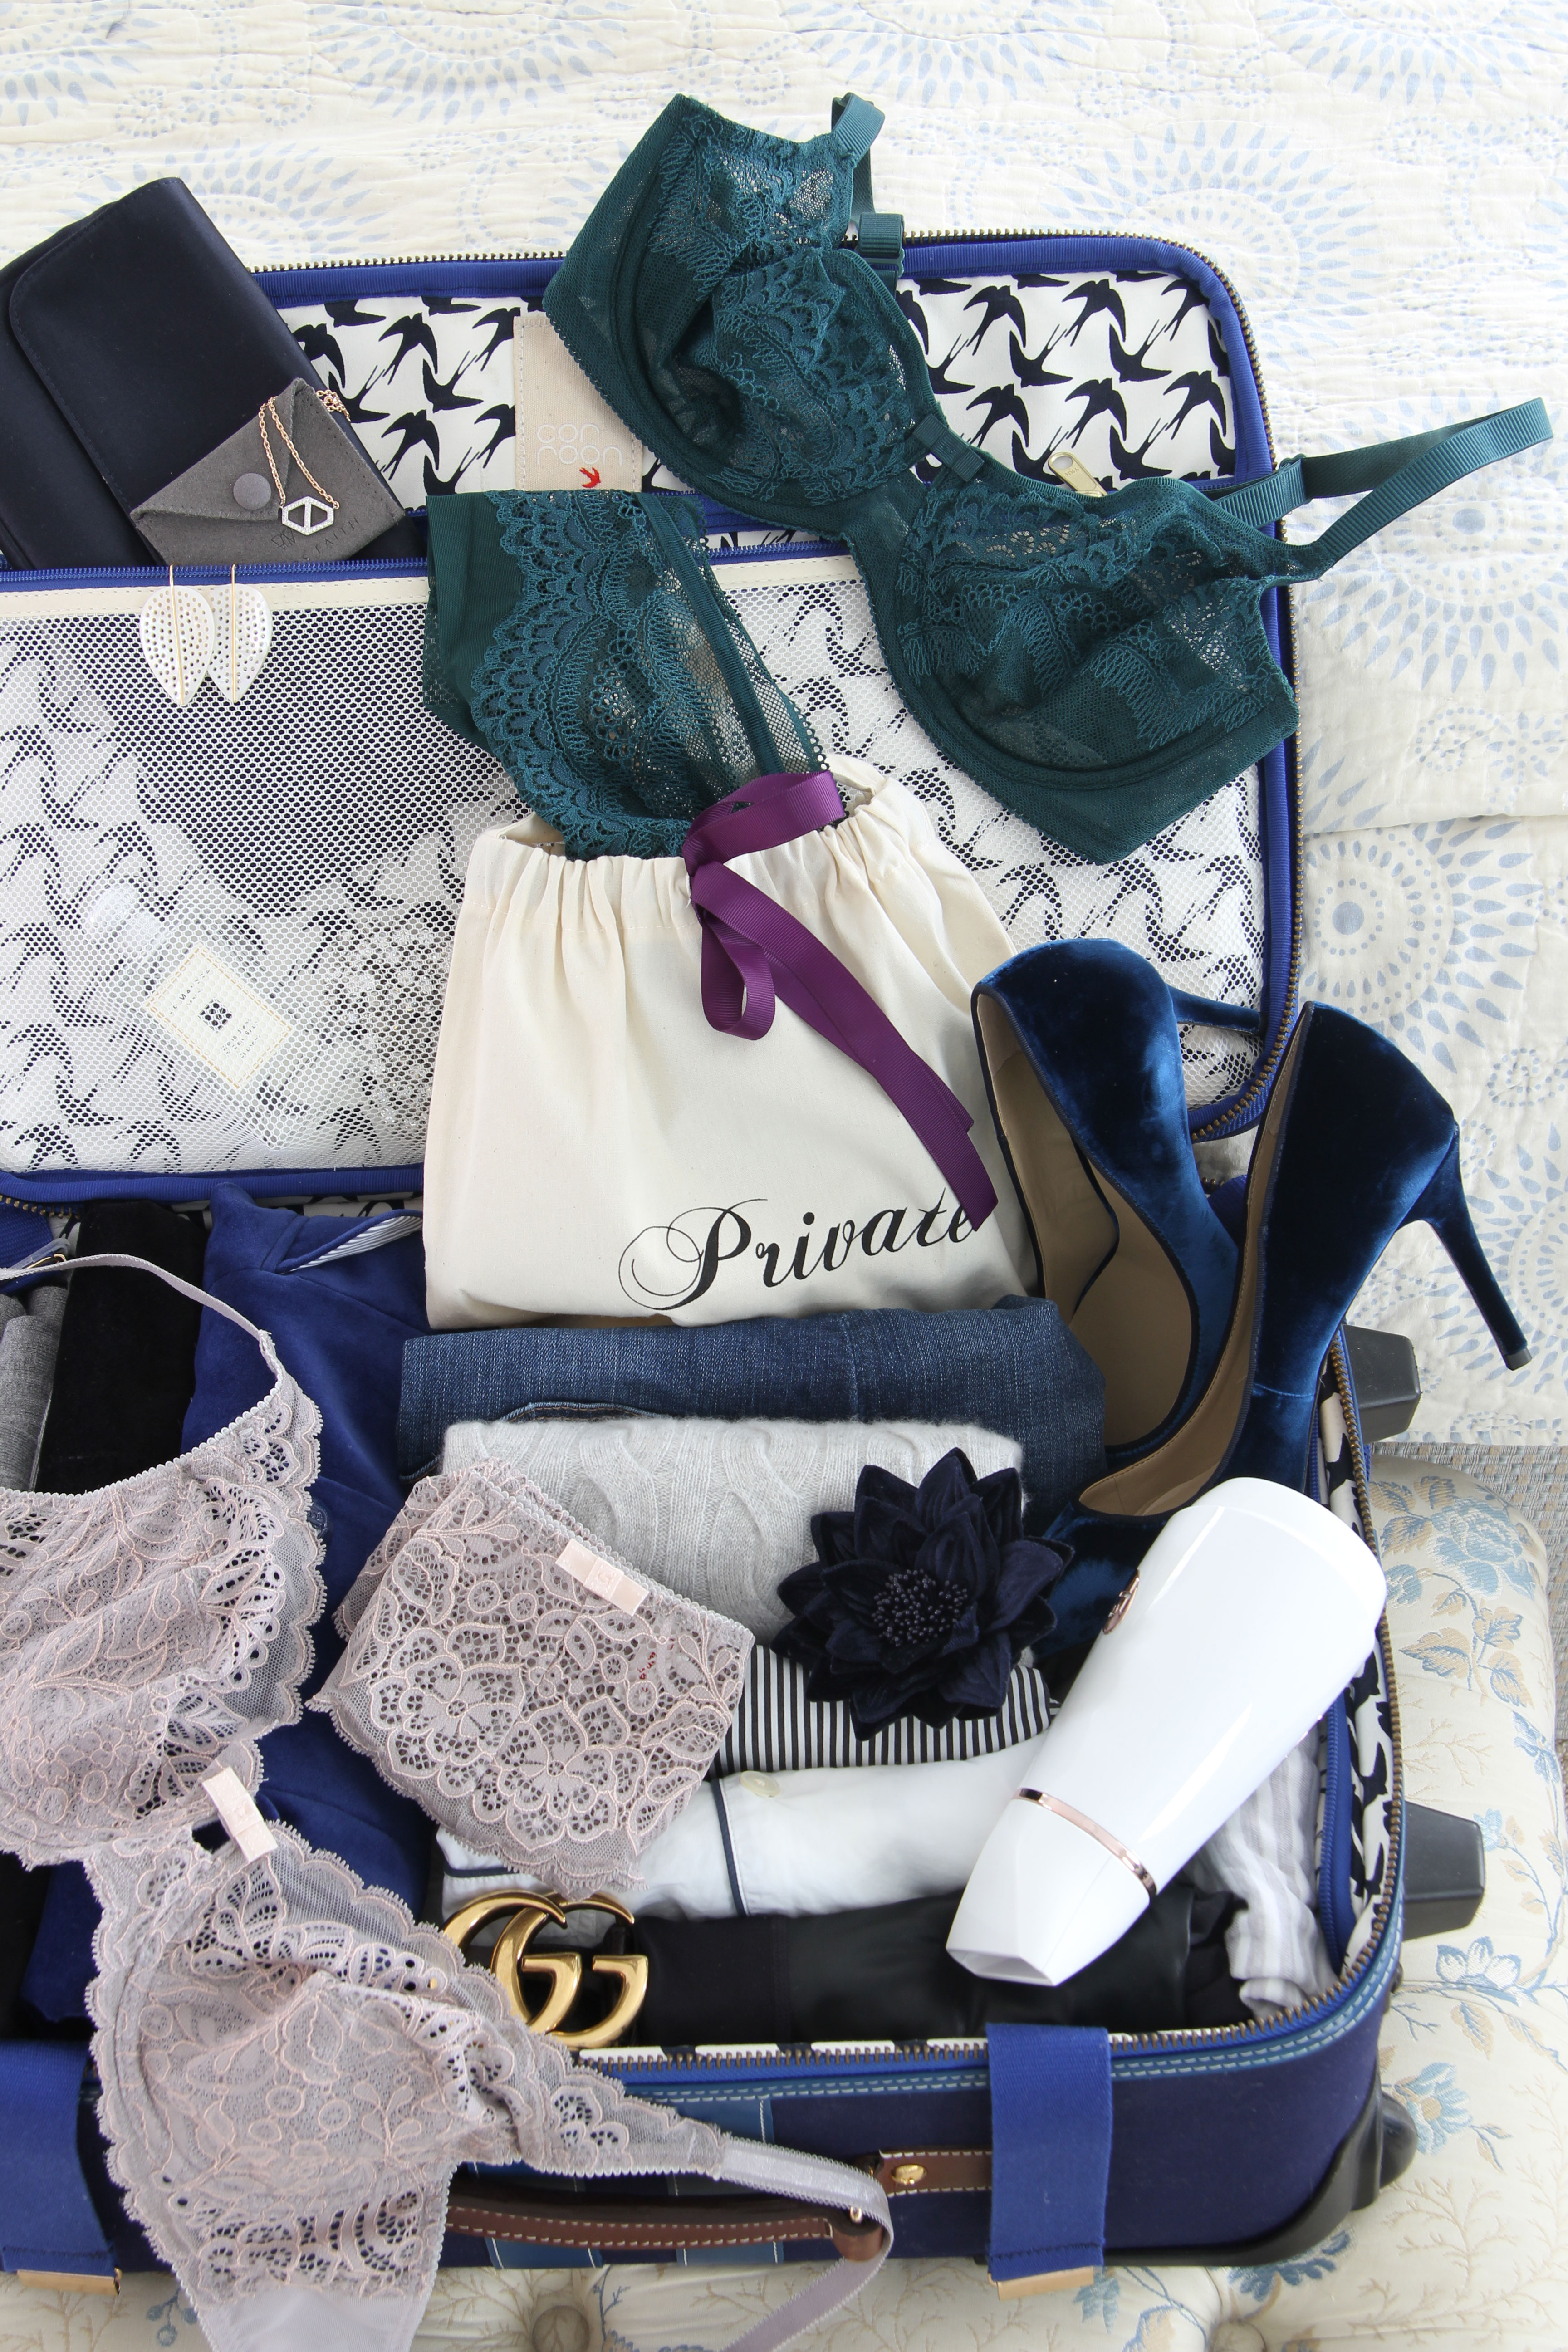 Ridgely Brode shares her favorite present under her tree on Ridgely's Radar and it is some new sets of lingerie from Journelle.